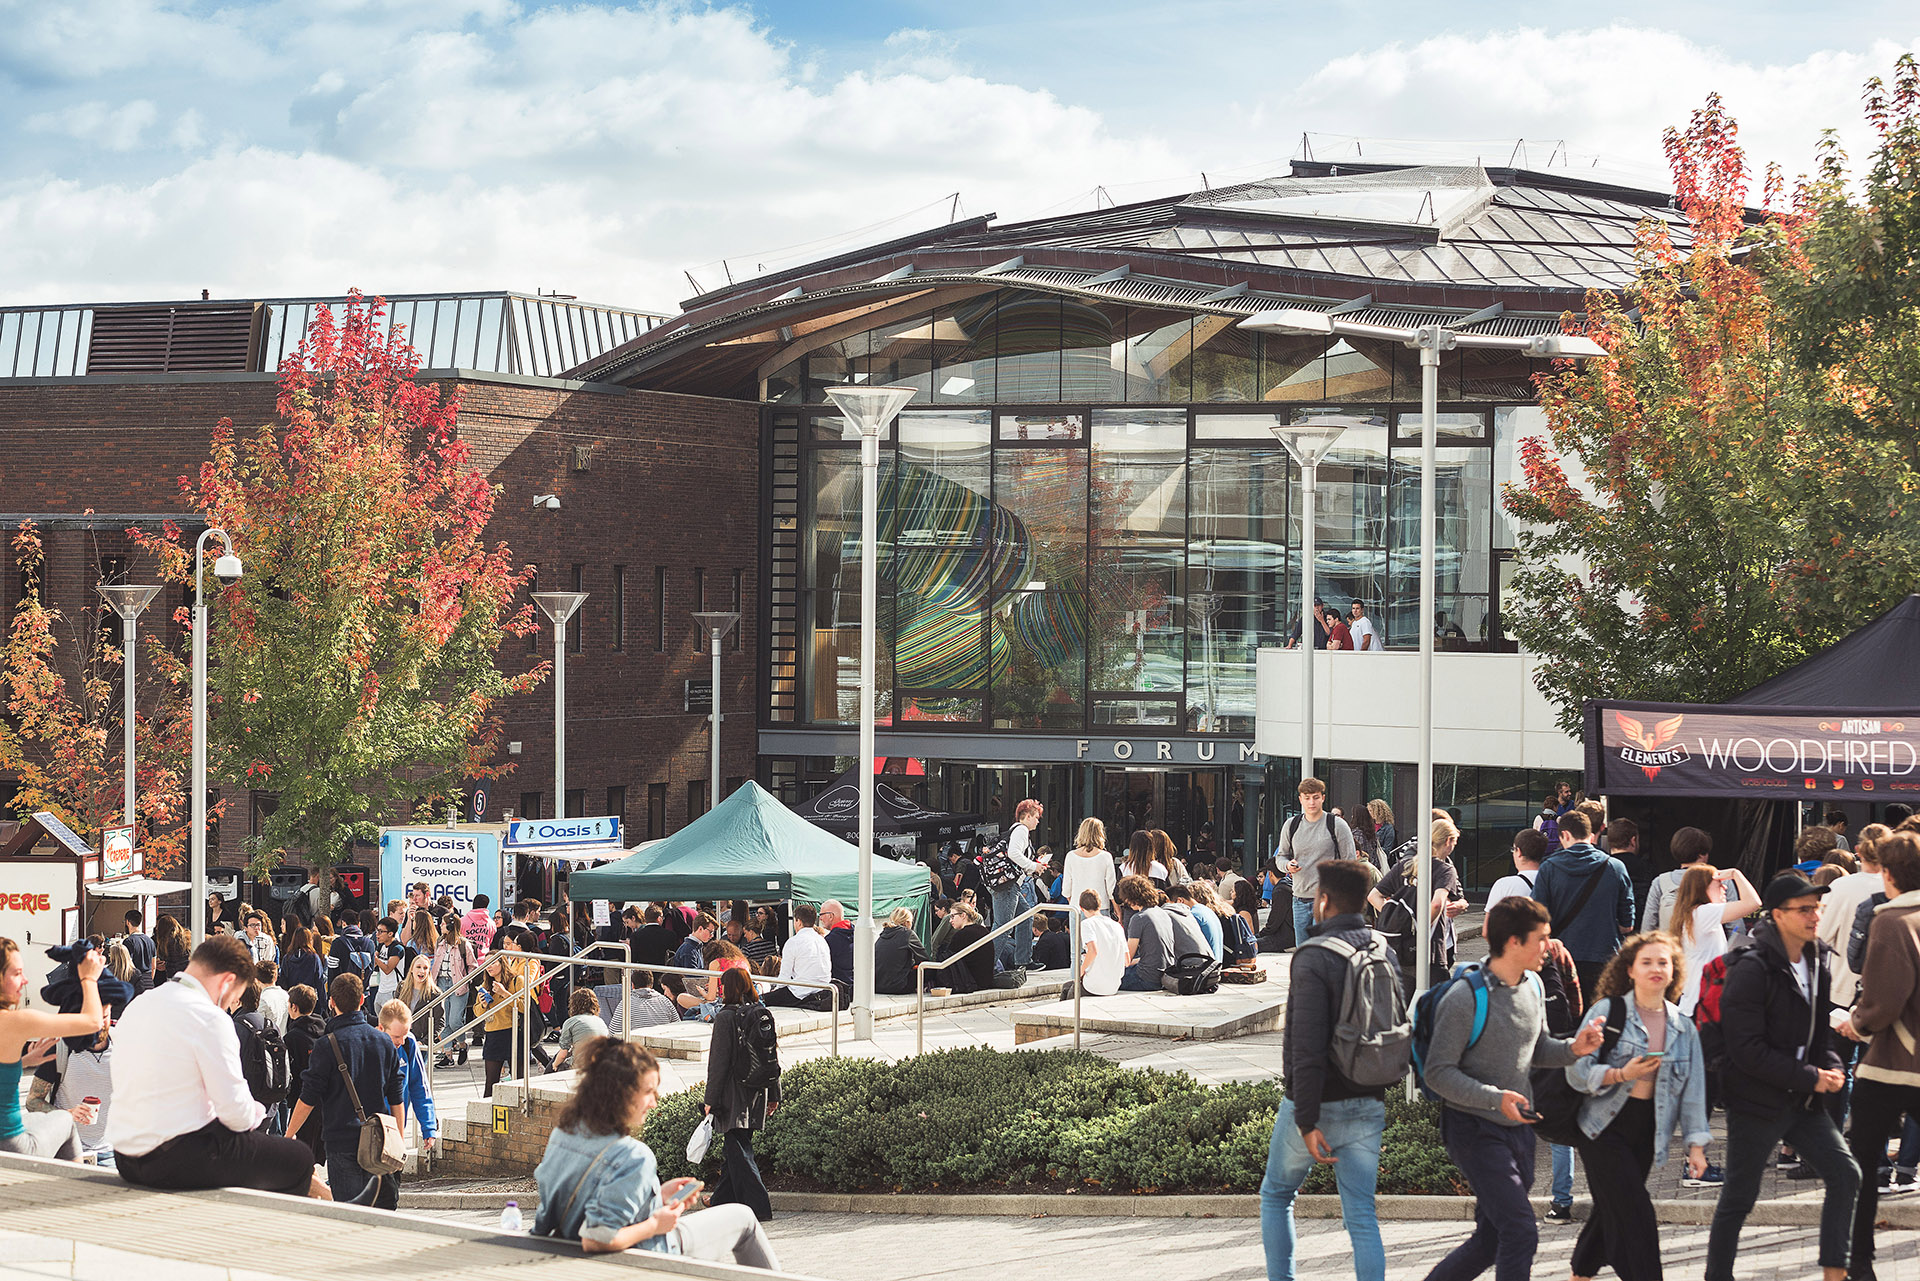 University of Exeter students at fair event on campus